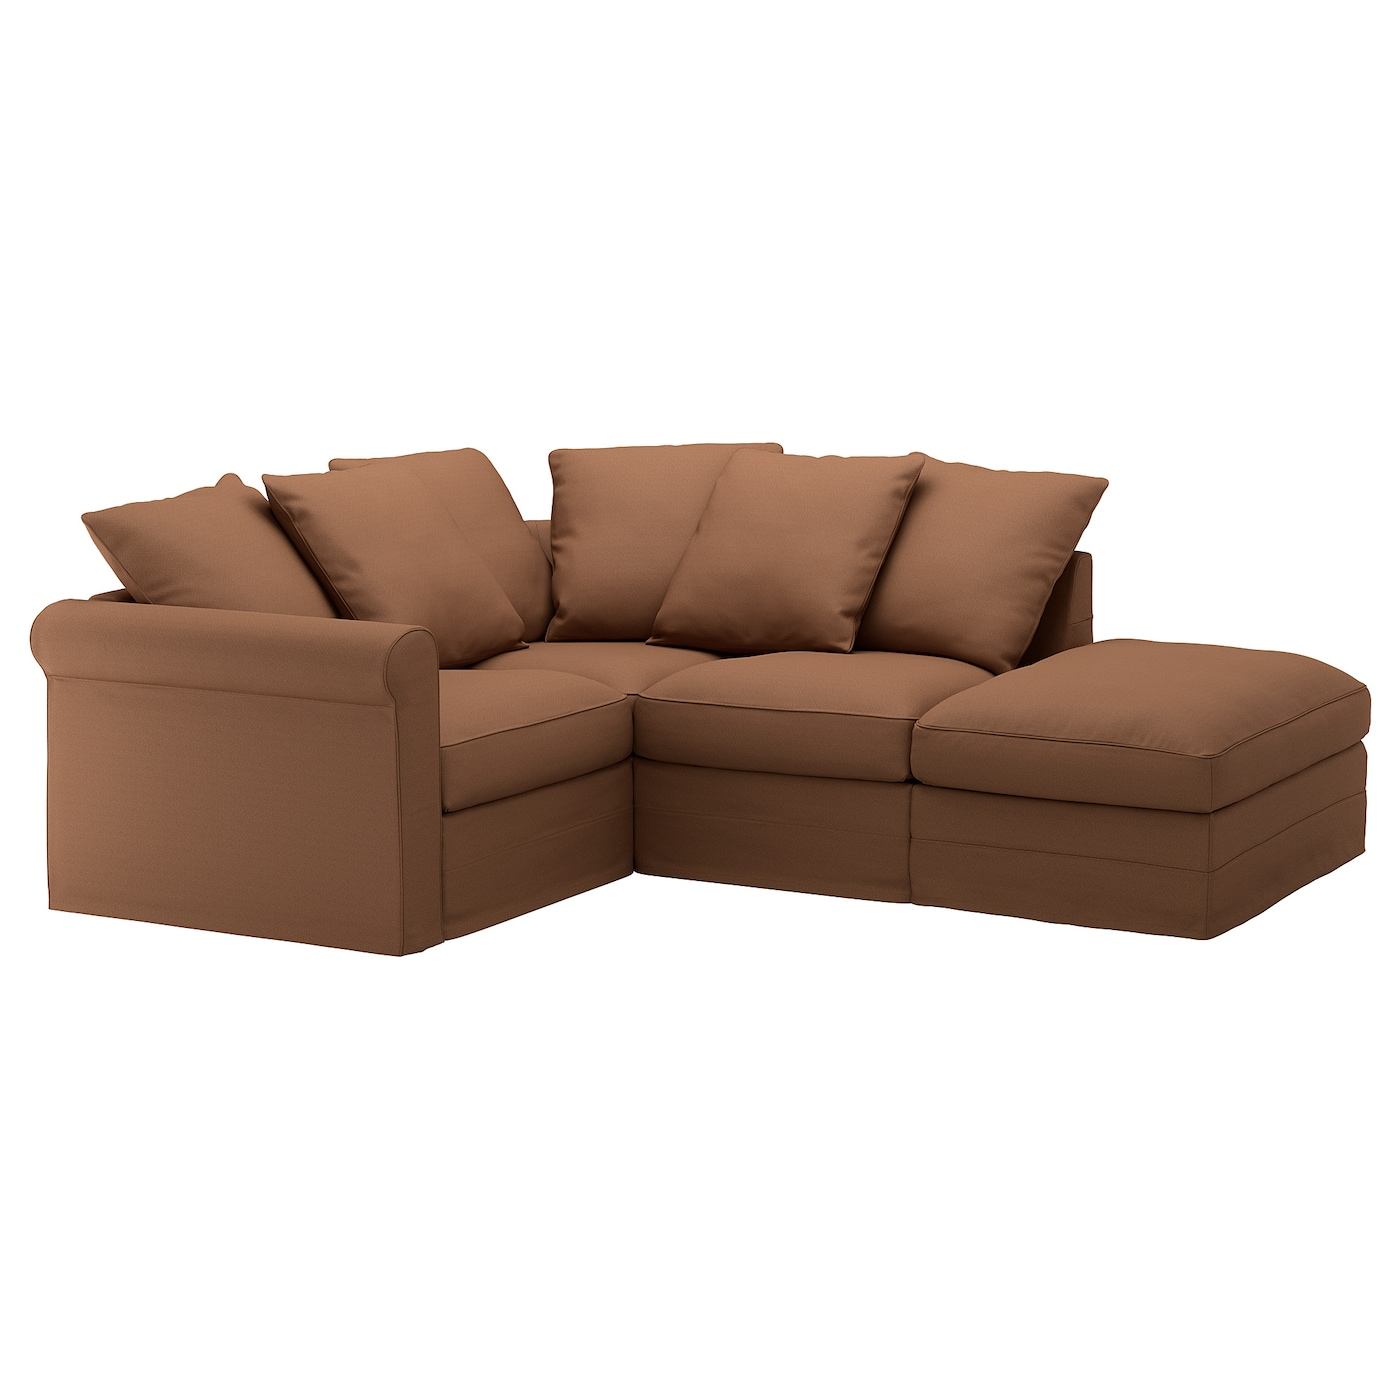 IKEA GRÖNLID corner sofa, 3-seat 10 year guarantee. Read about the terms in the guarantee brochure.